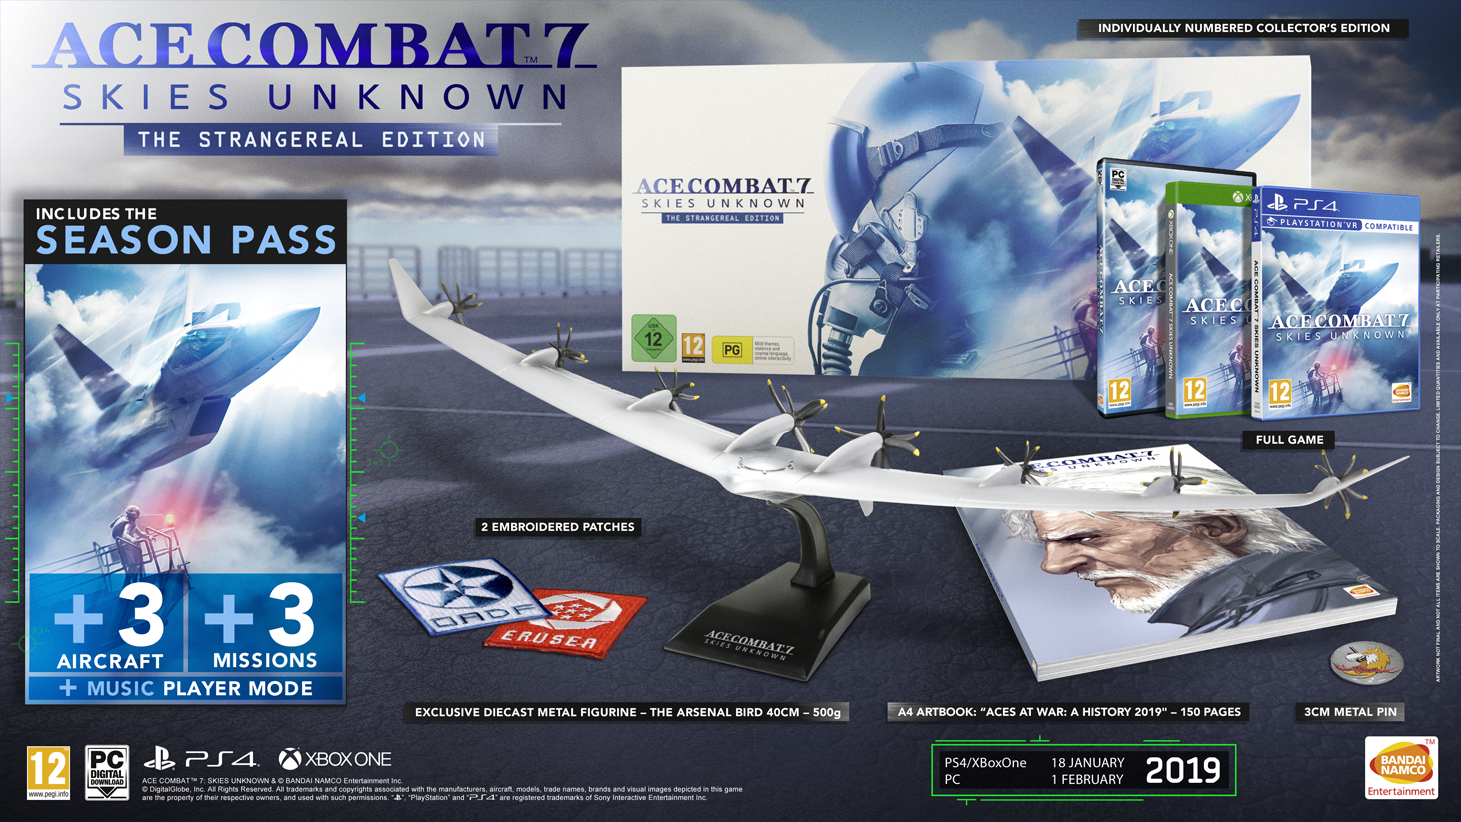 ACE COMBAT 7: SKIES UNKNOWN COLLECTOR'S EDITION REVEALED